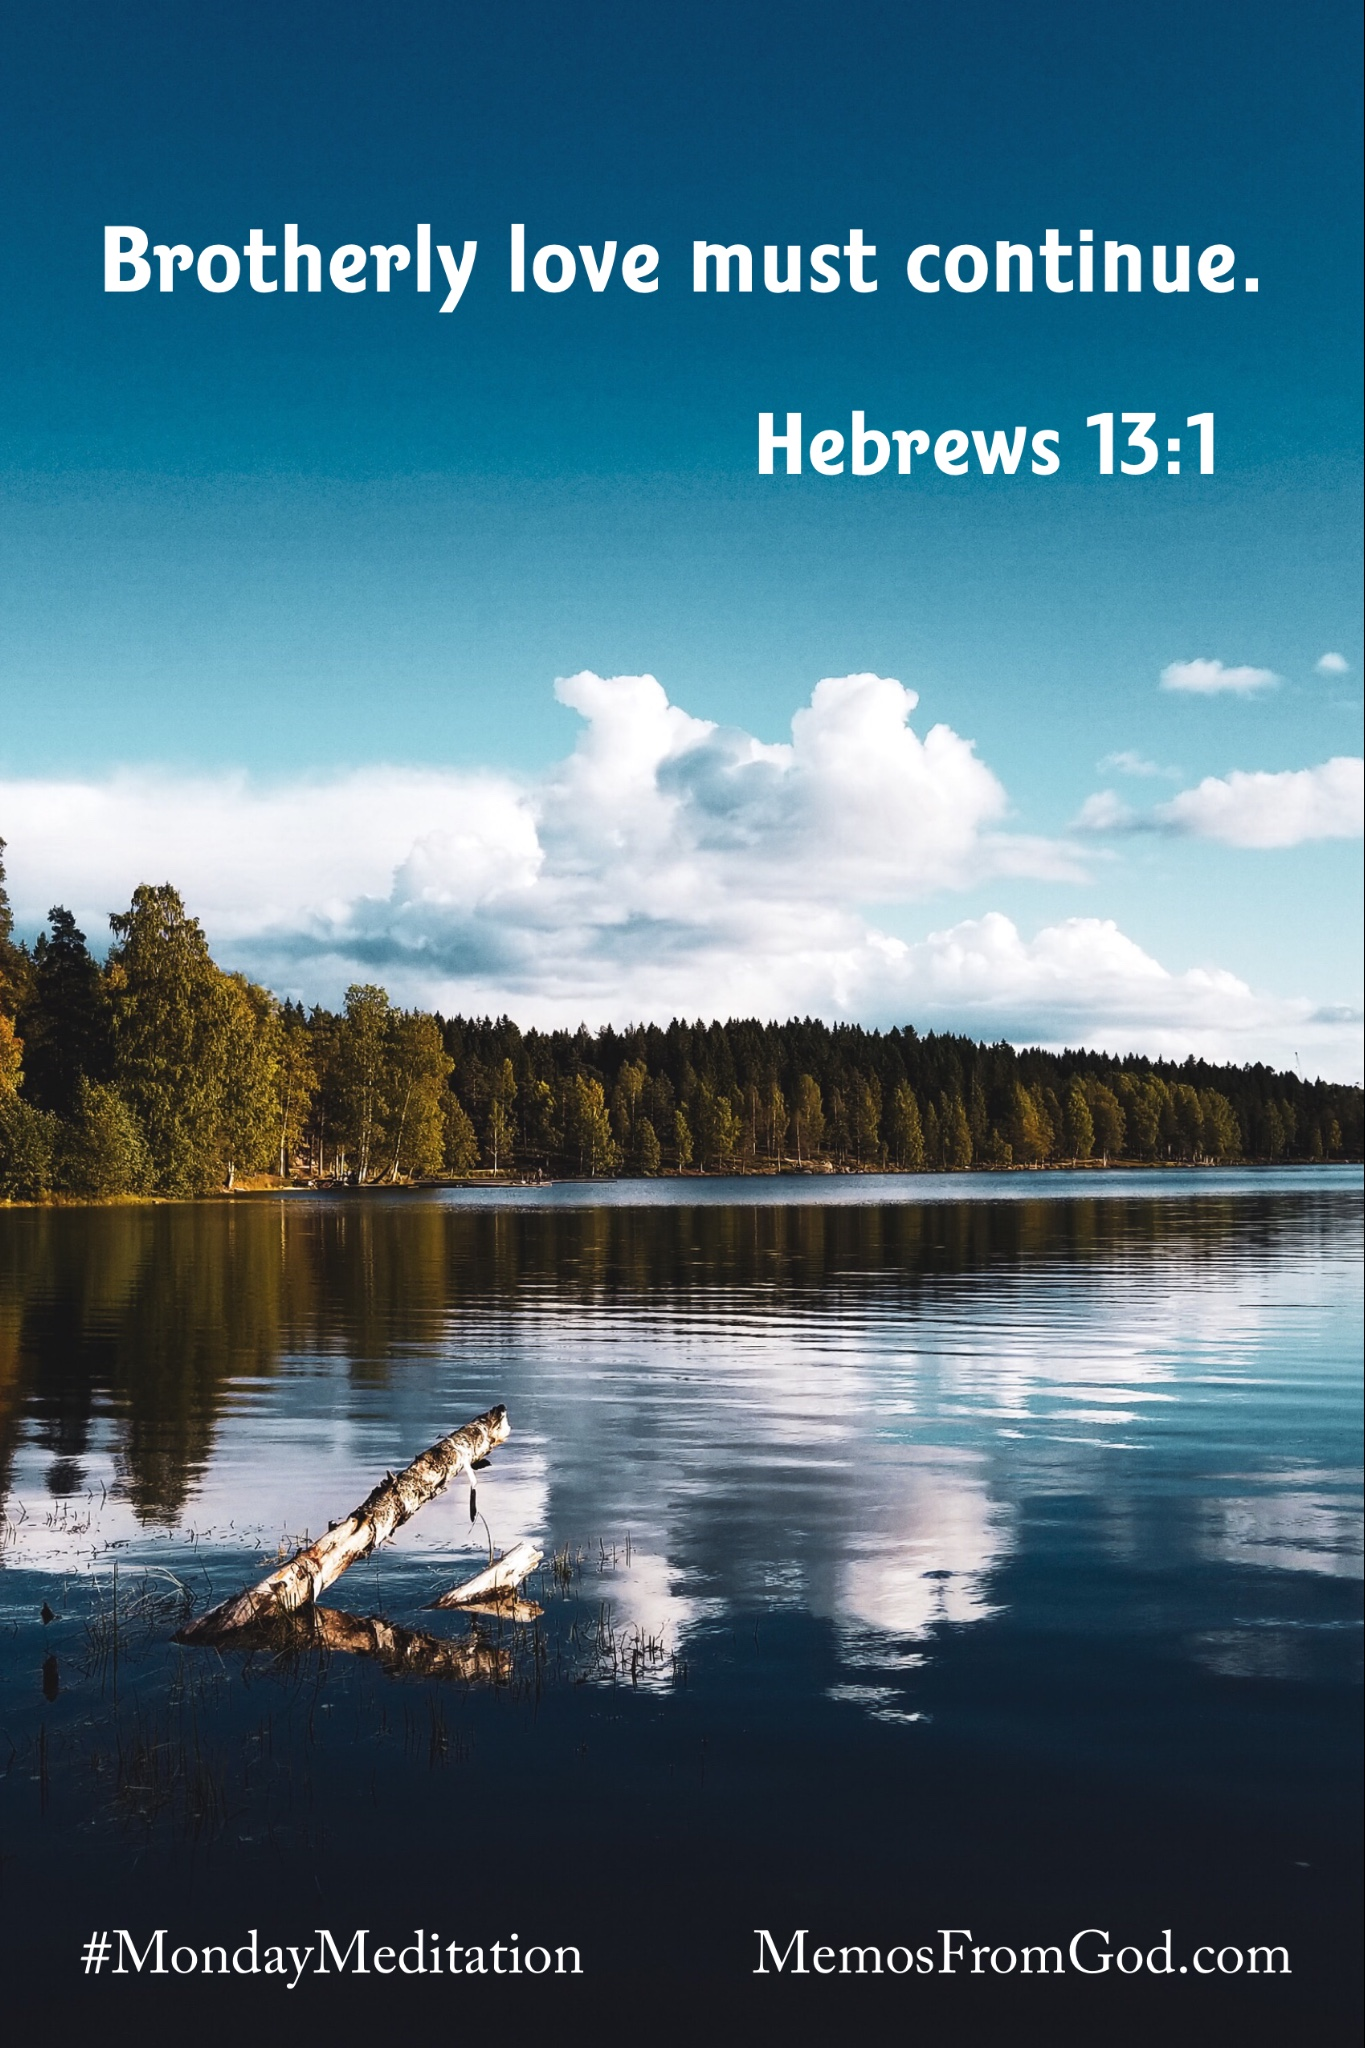 White clouds in a deep teal sky reflecting in a lake with evergreen trees on the horizon. Caption: Brotherly love must continue. Hebrews 13:1